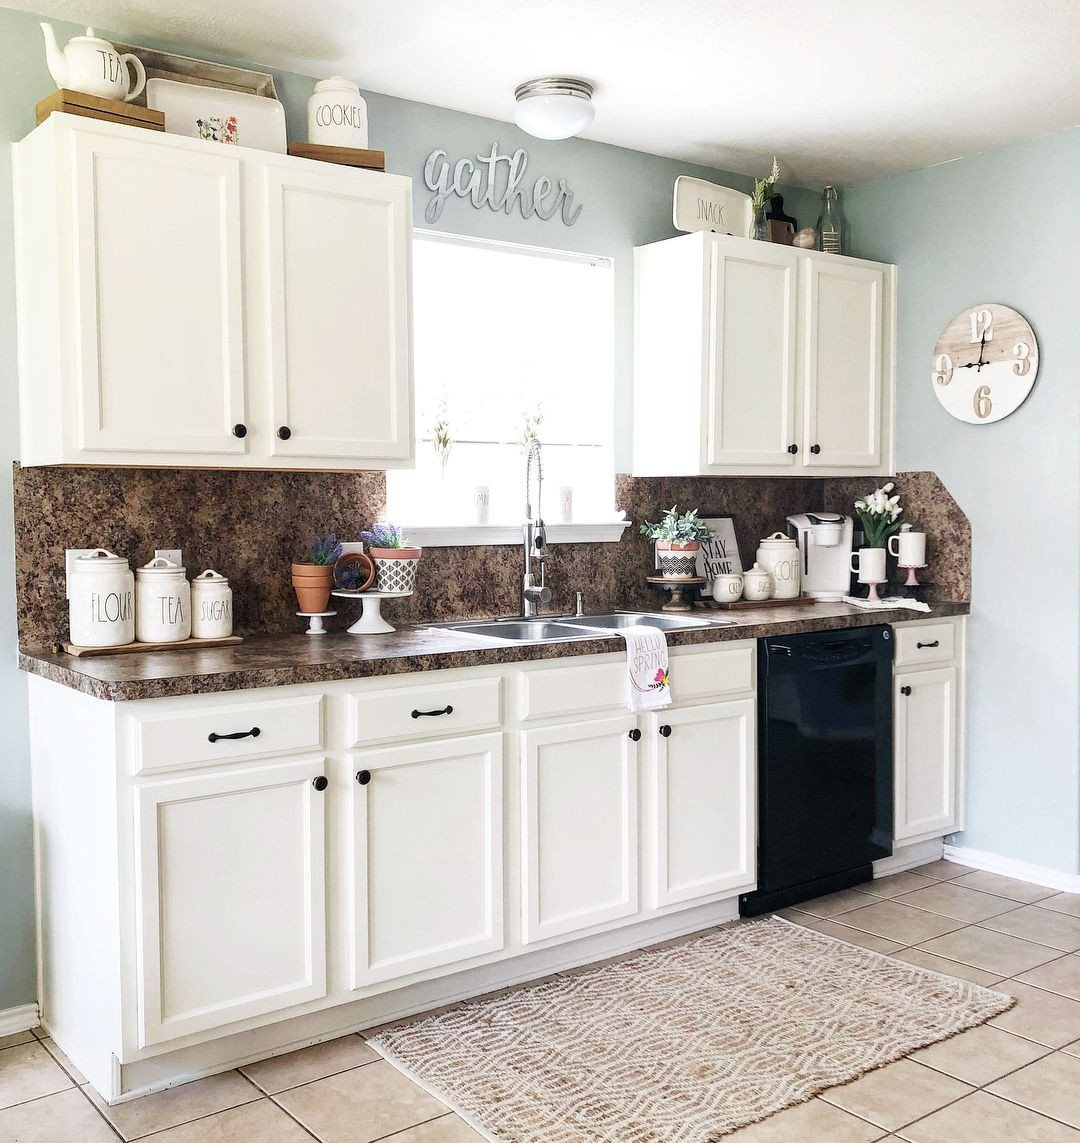 Kitchen Cabinet top Decor Ideas New 10 Ways to Decorate Your Kitchen Cabinets